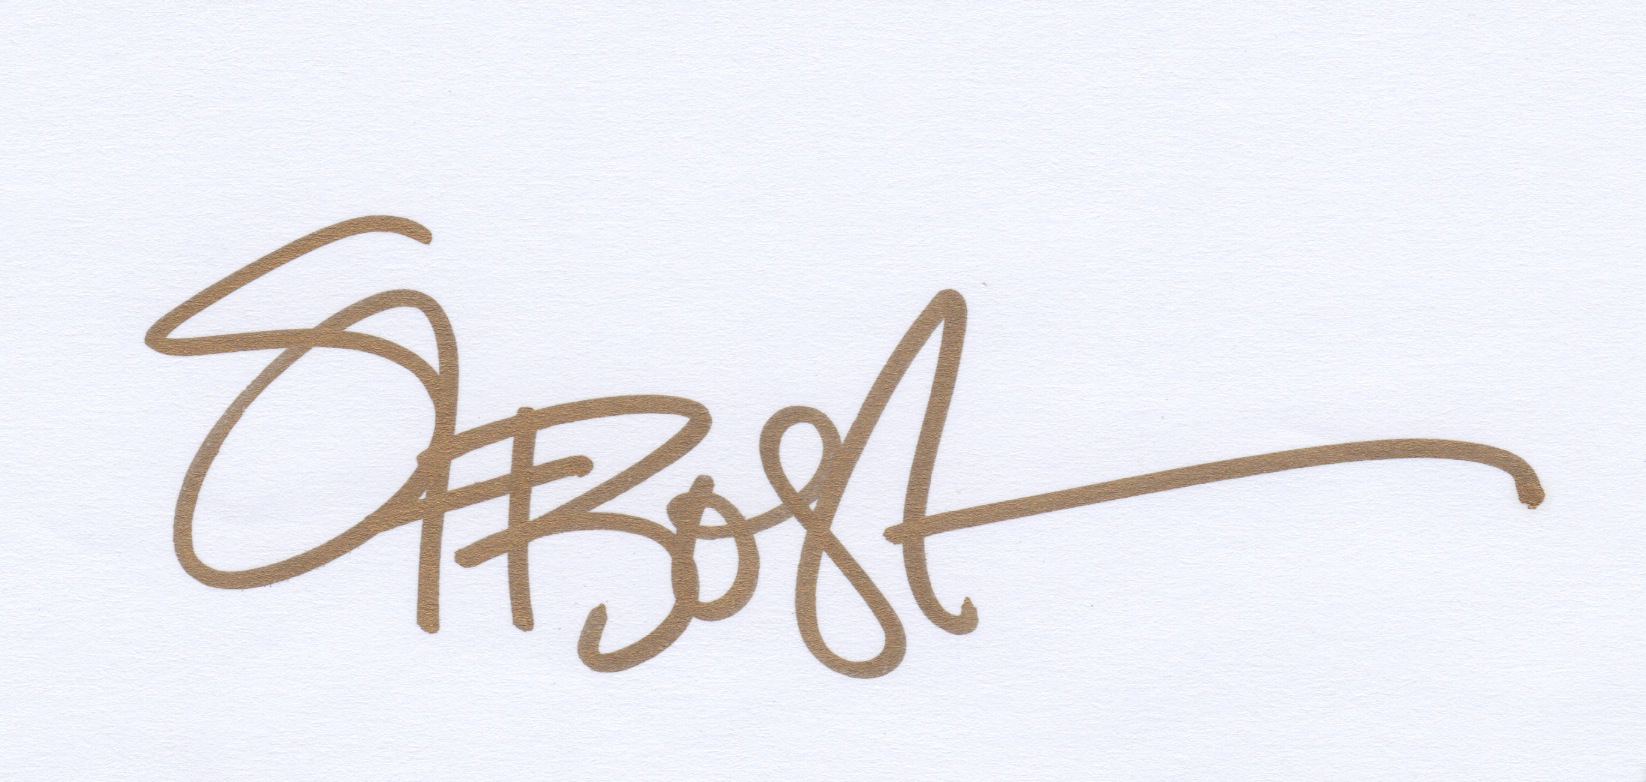 Stephanie Bostock ART's Signature